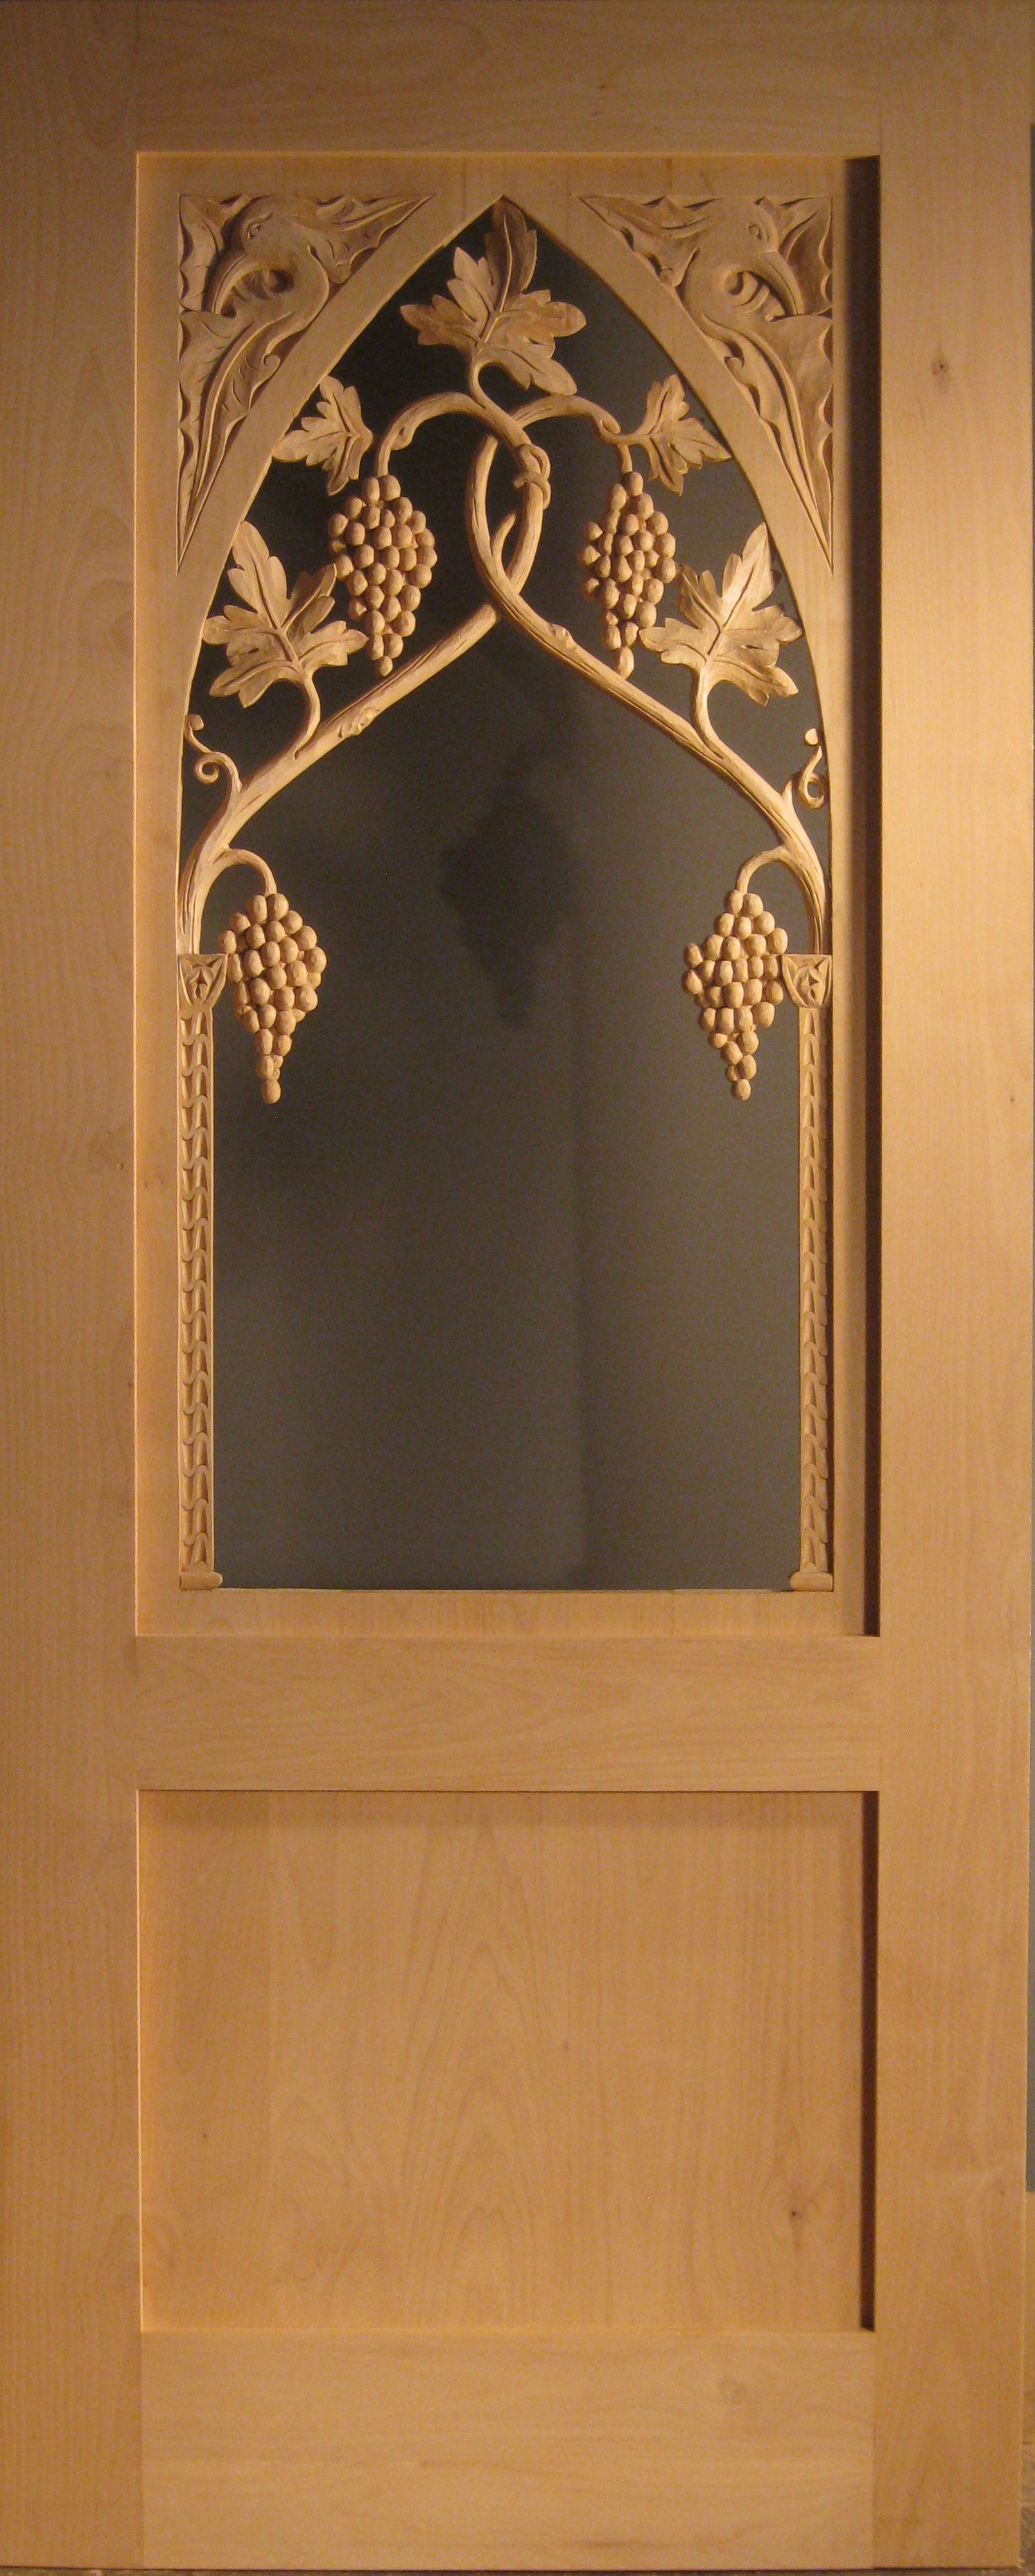 Abby, carved wood and glass wine cellar door